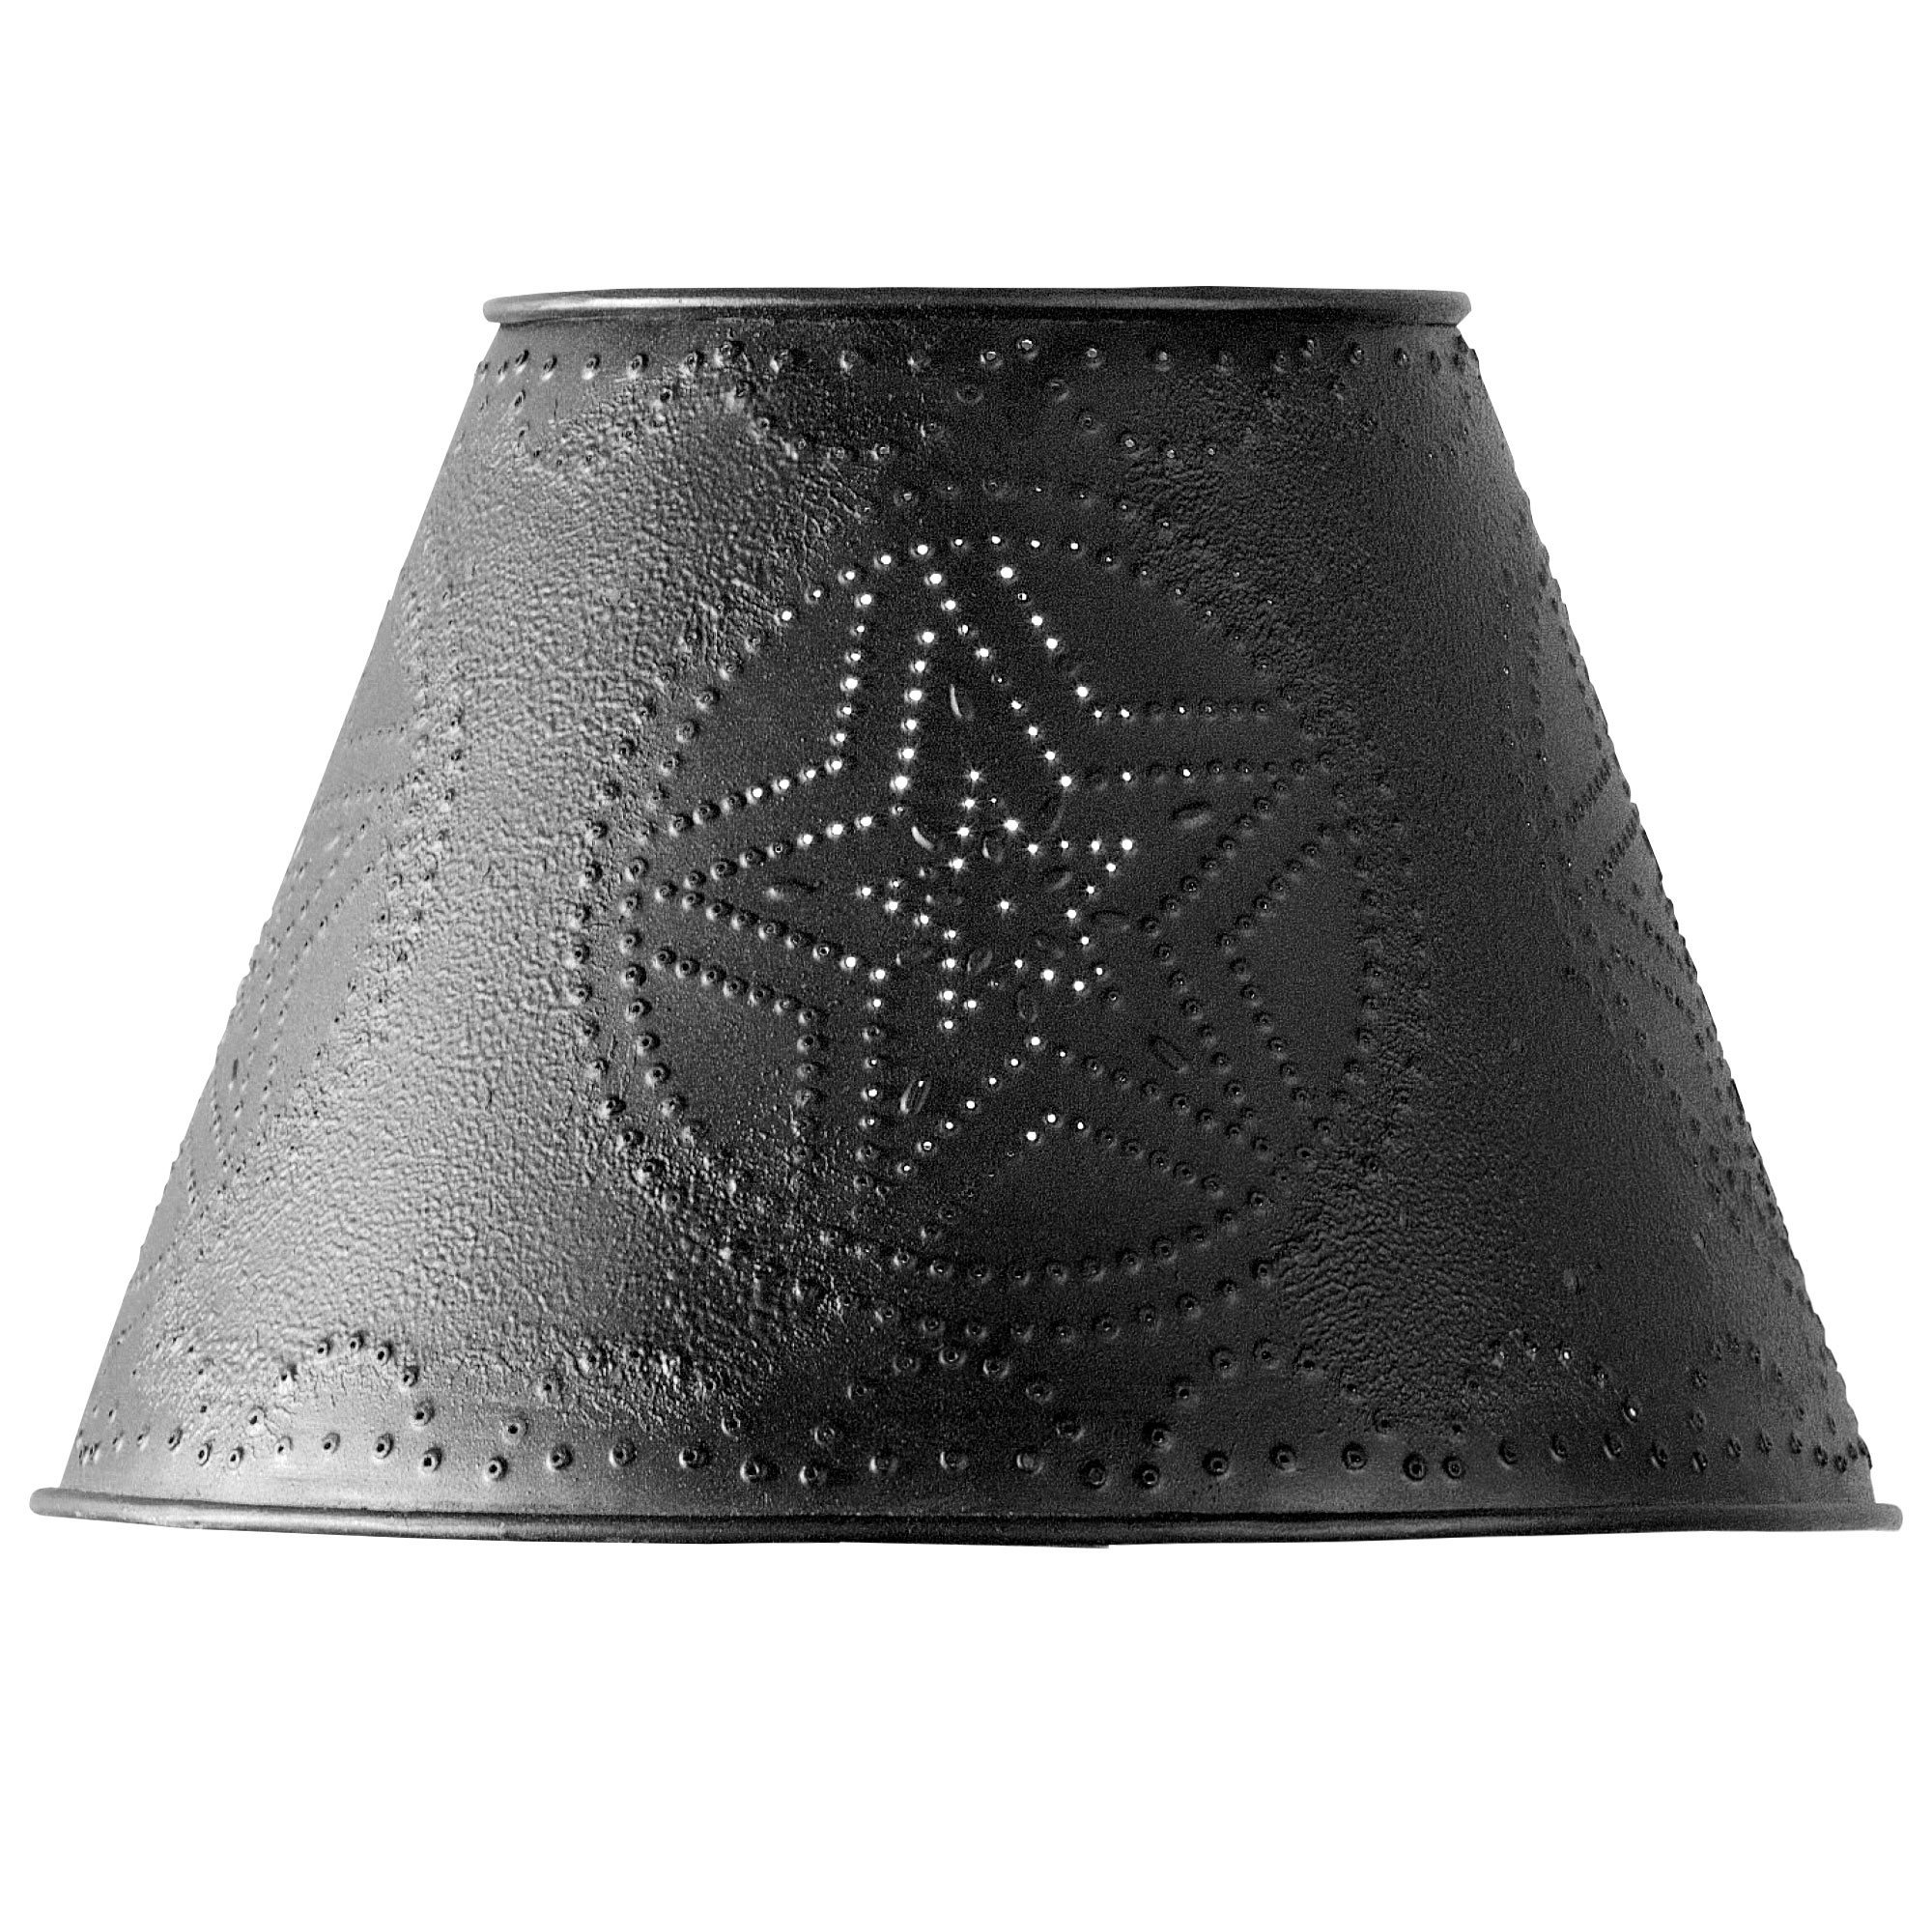 lamp shade ... picture 4 of 4 DUZKSIK